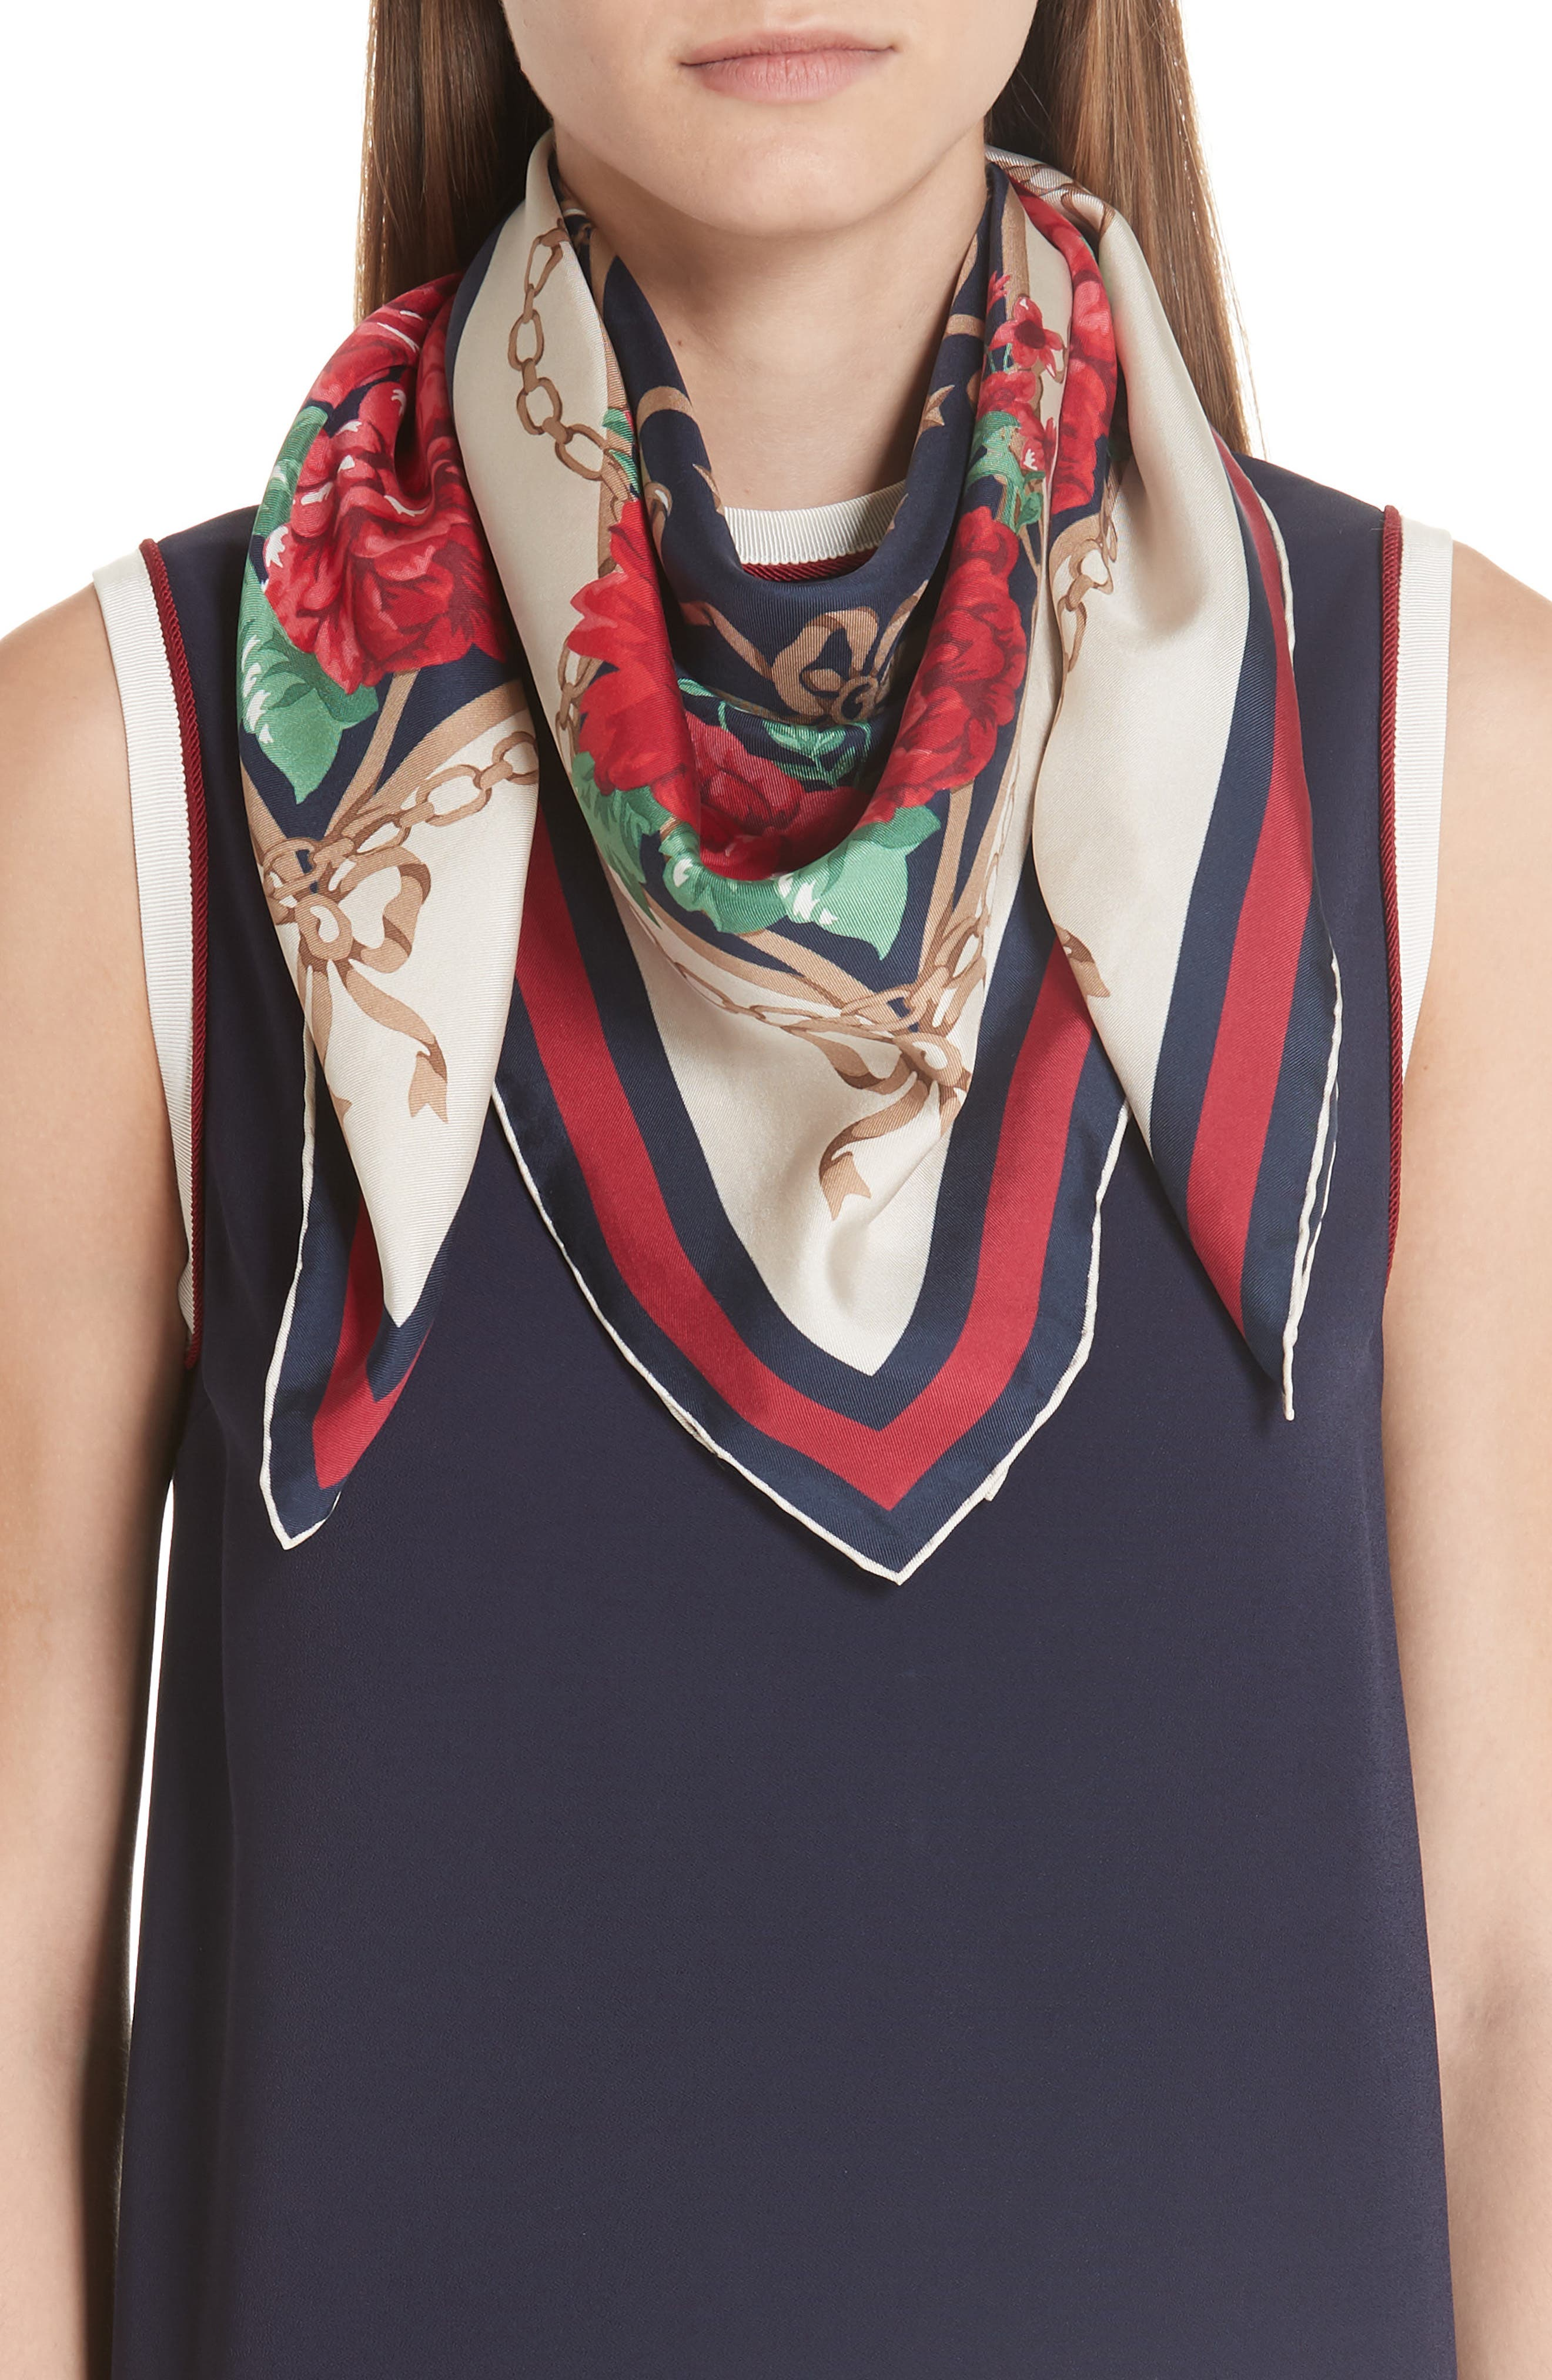 Rose Chain Foulard Silk Twill Scarf,                         Main,                         color, Mightnight Blue/ Red